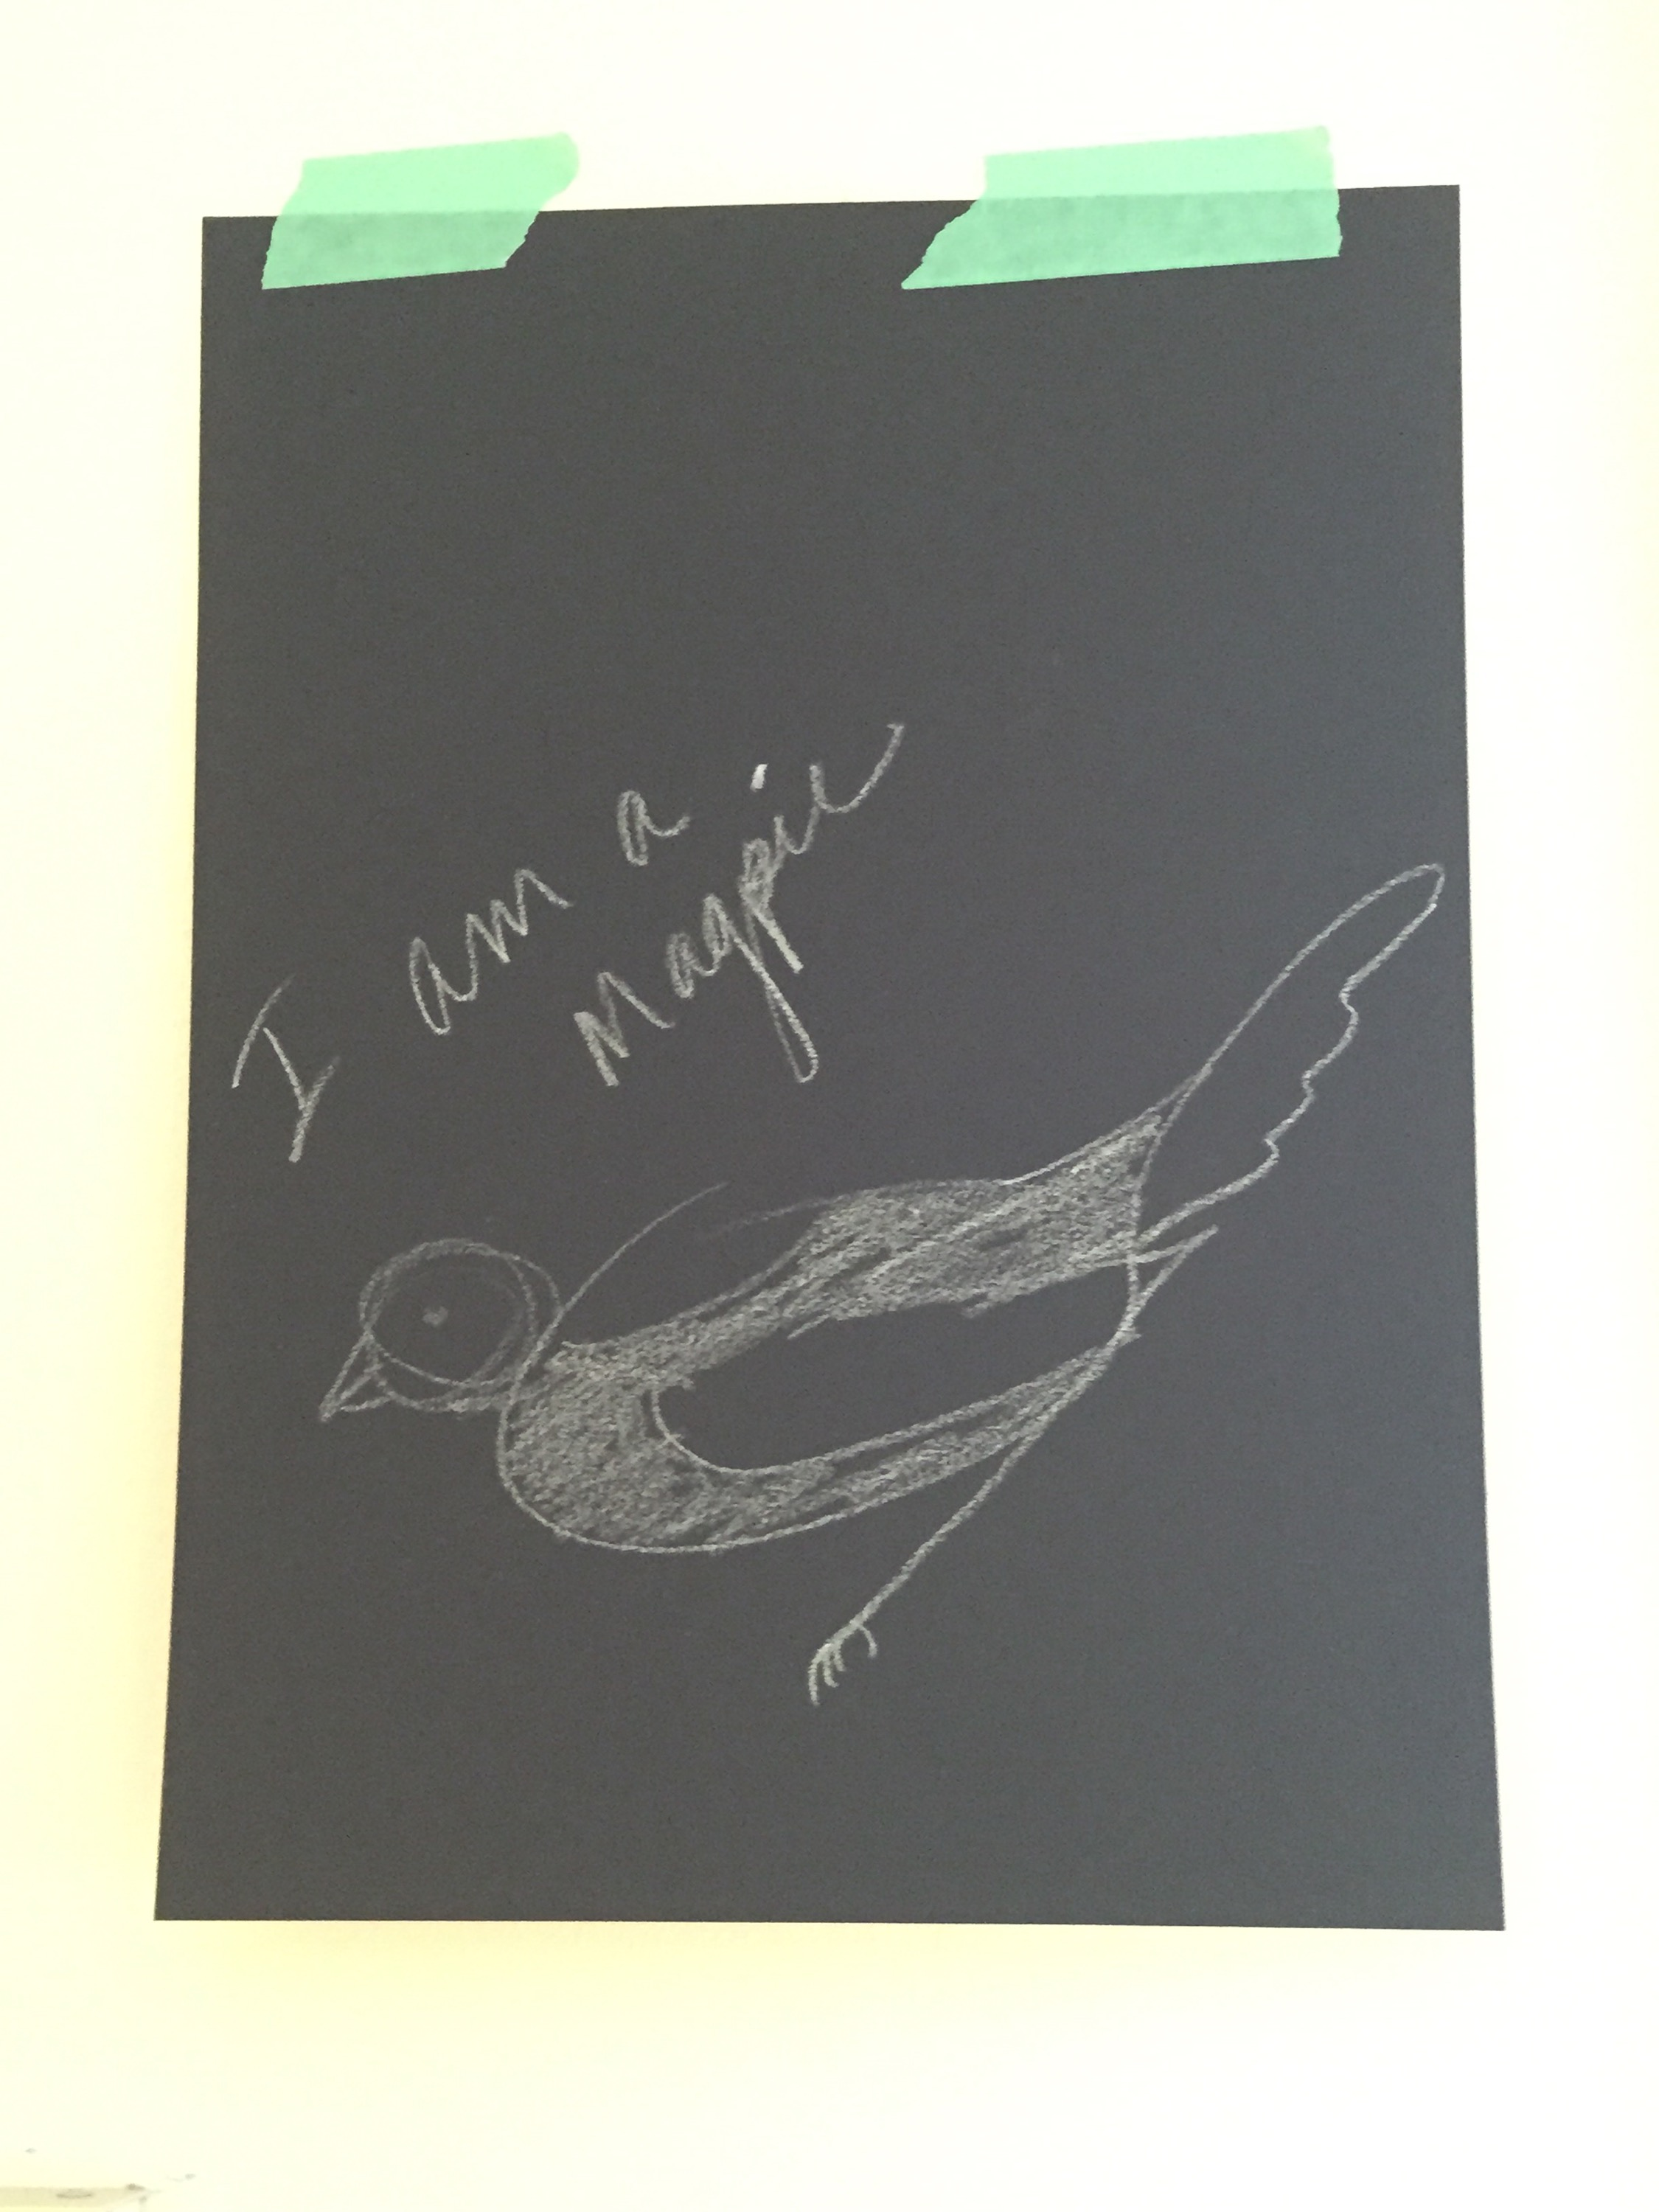 How-To Sketch, I am a Magpie - china marker on black paper